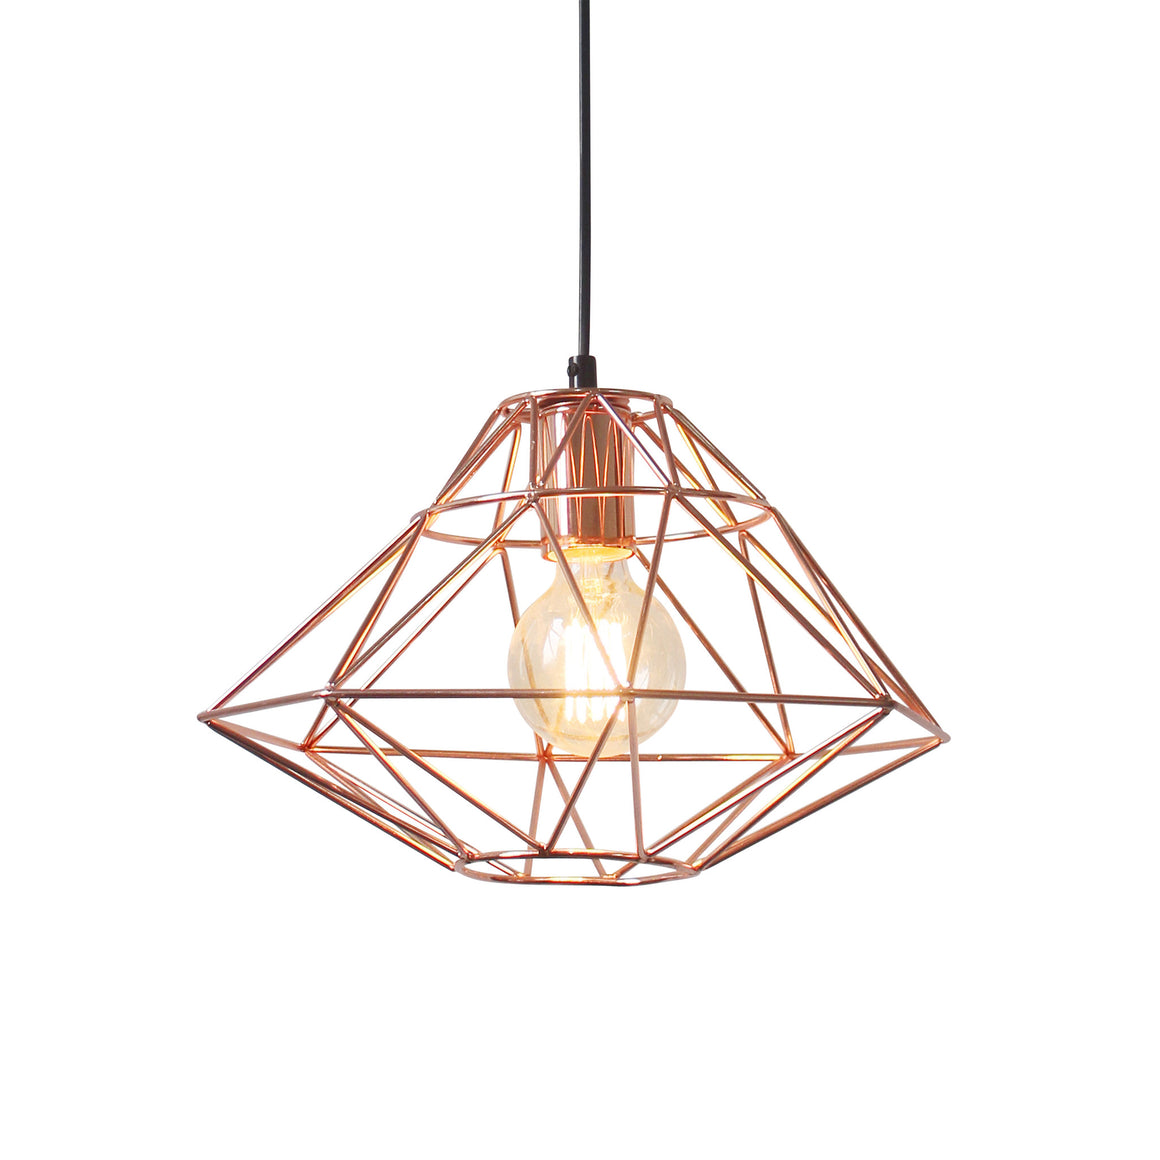 Wembley Ceiling Lamp Pendant Light Free Shipping